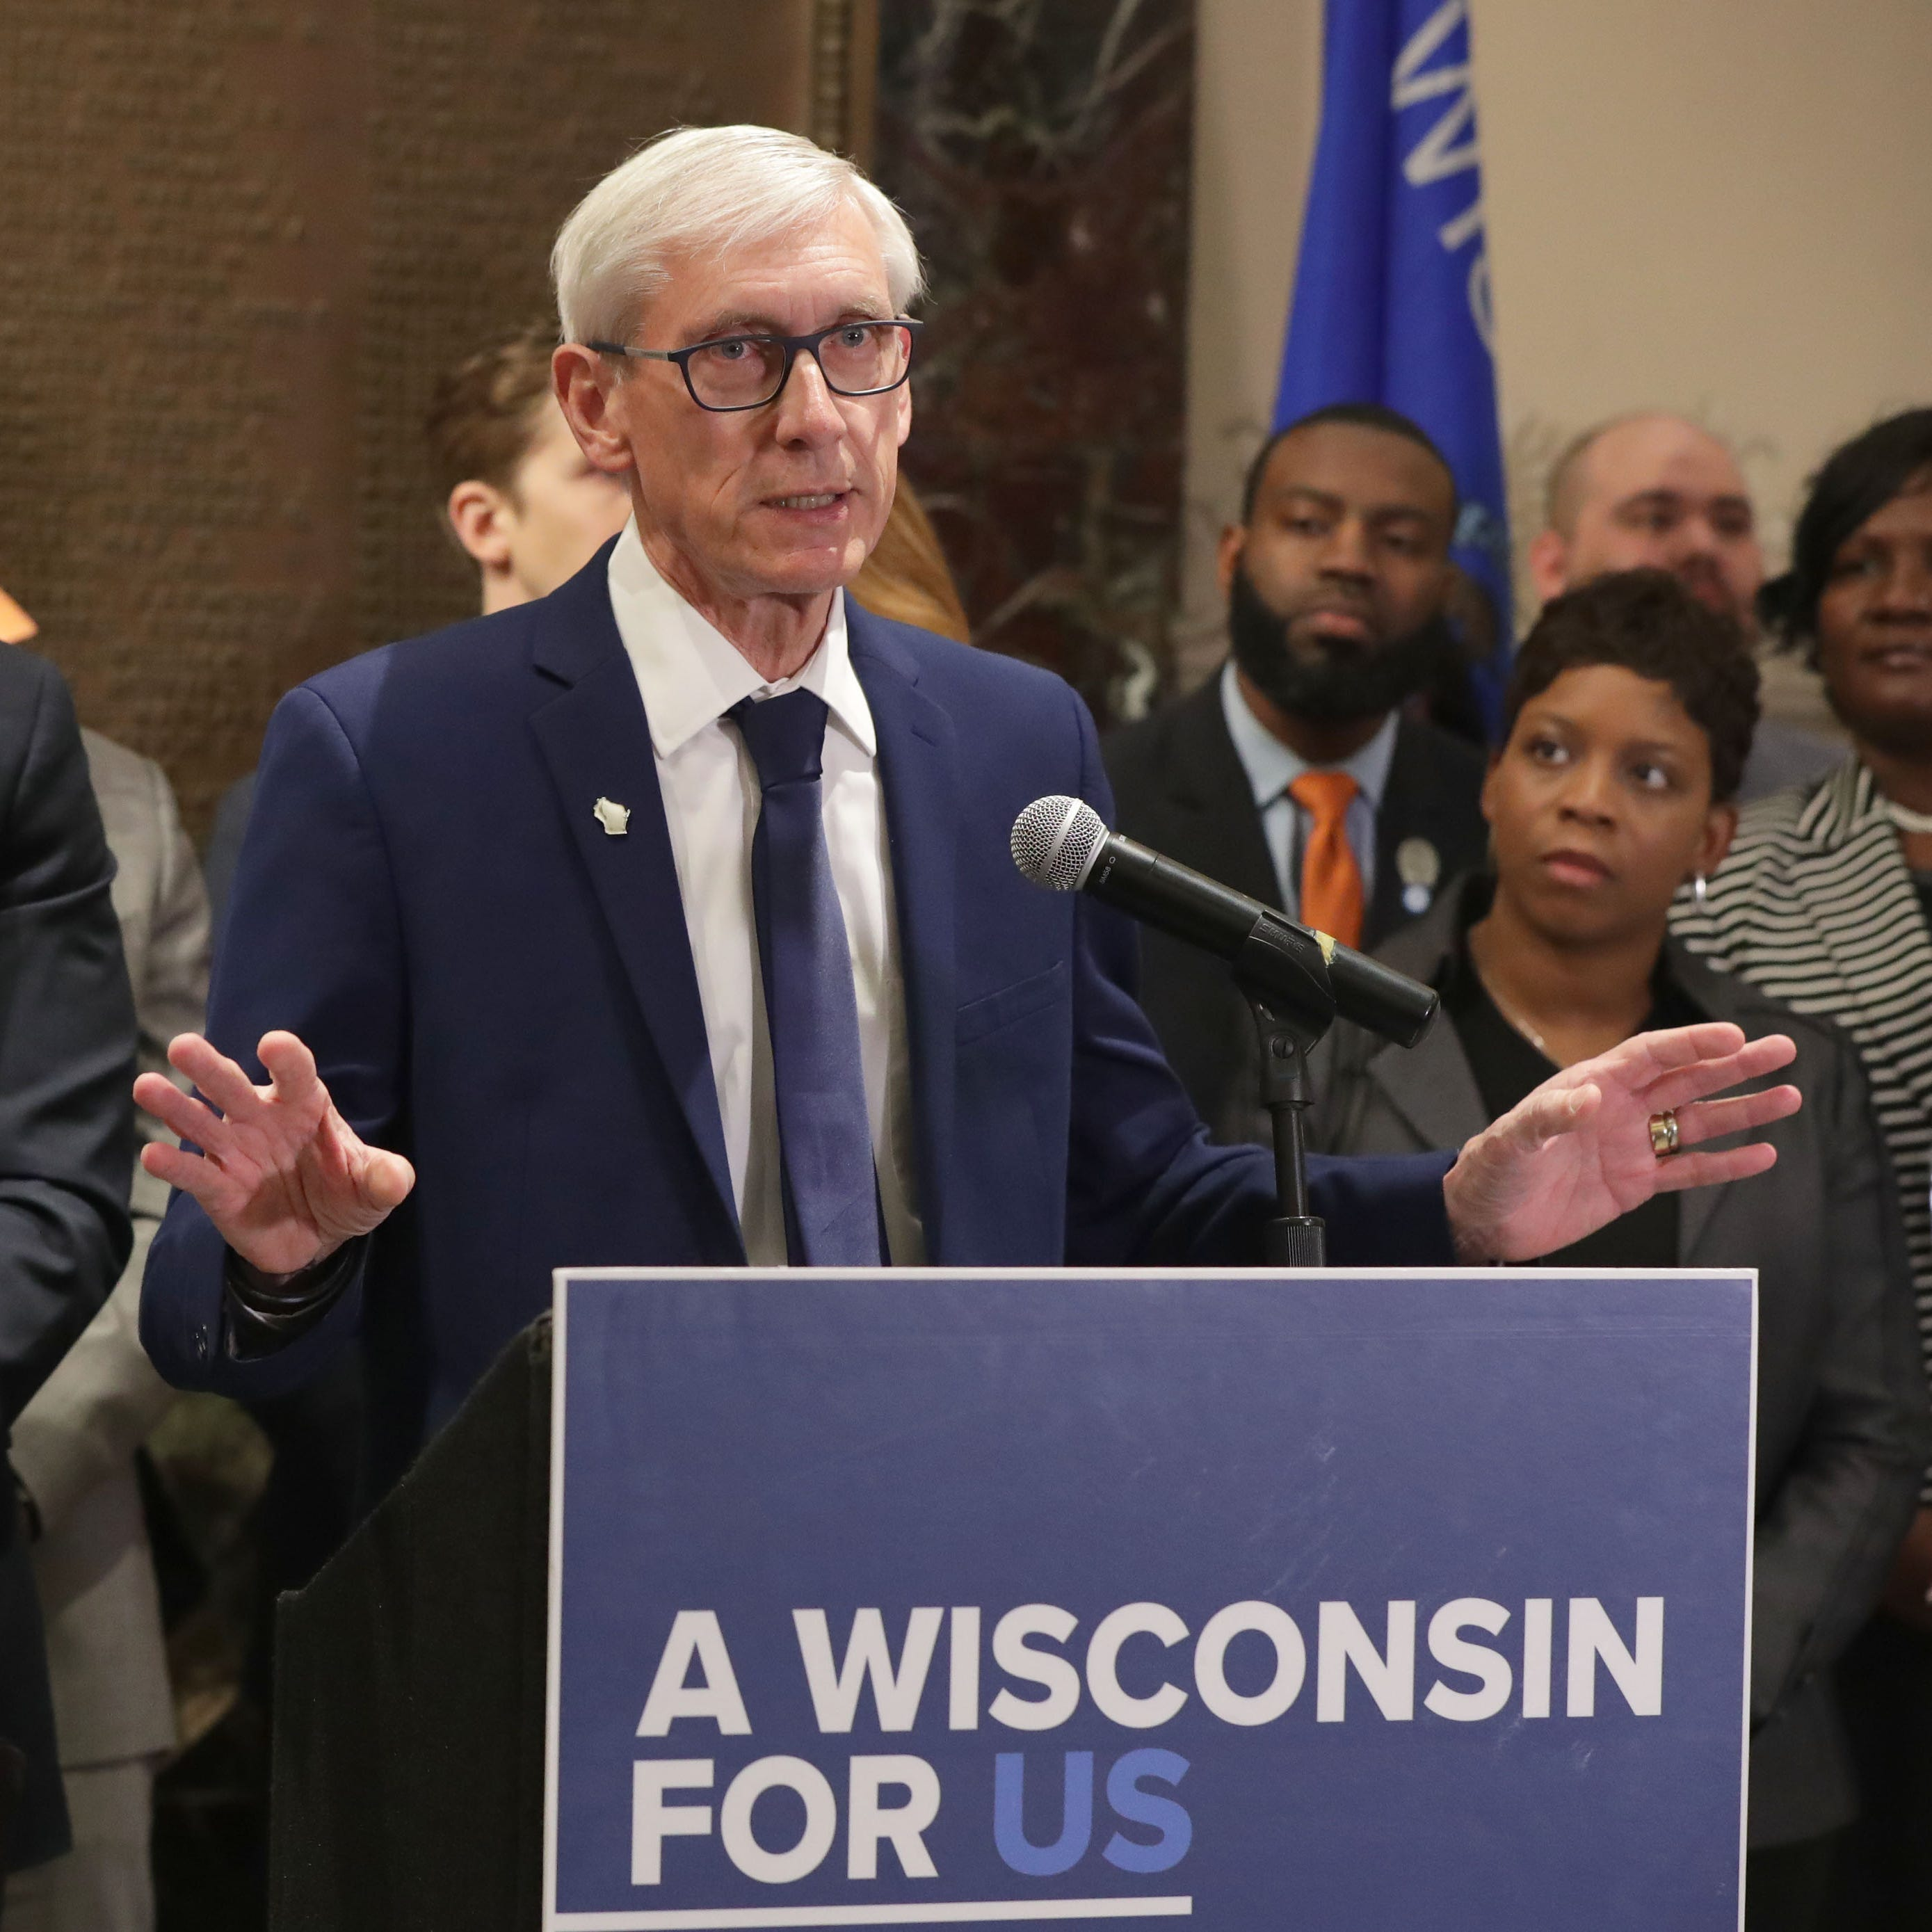 Gov. Tony Evers says voters should 'connect the dots' on why Republicans won't meet with his female aides